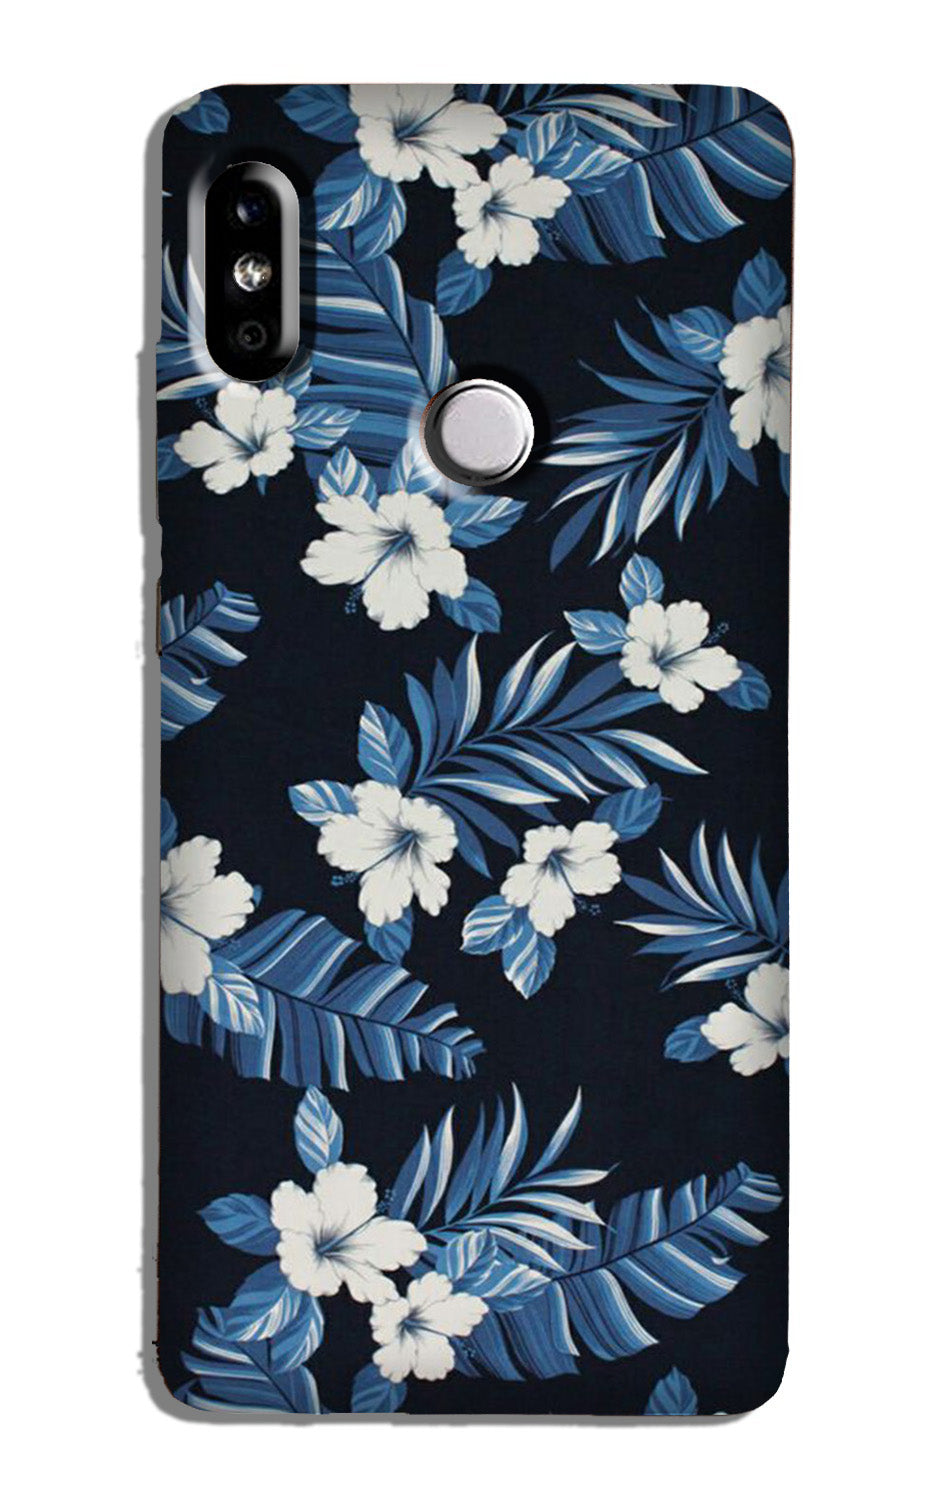 White flowers Blue Background2 Case for Redmi Note 6 Pro